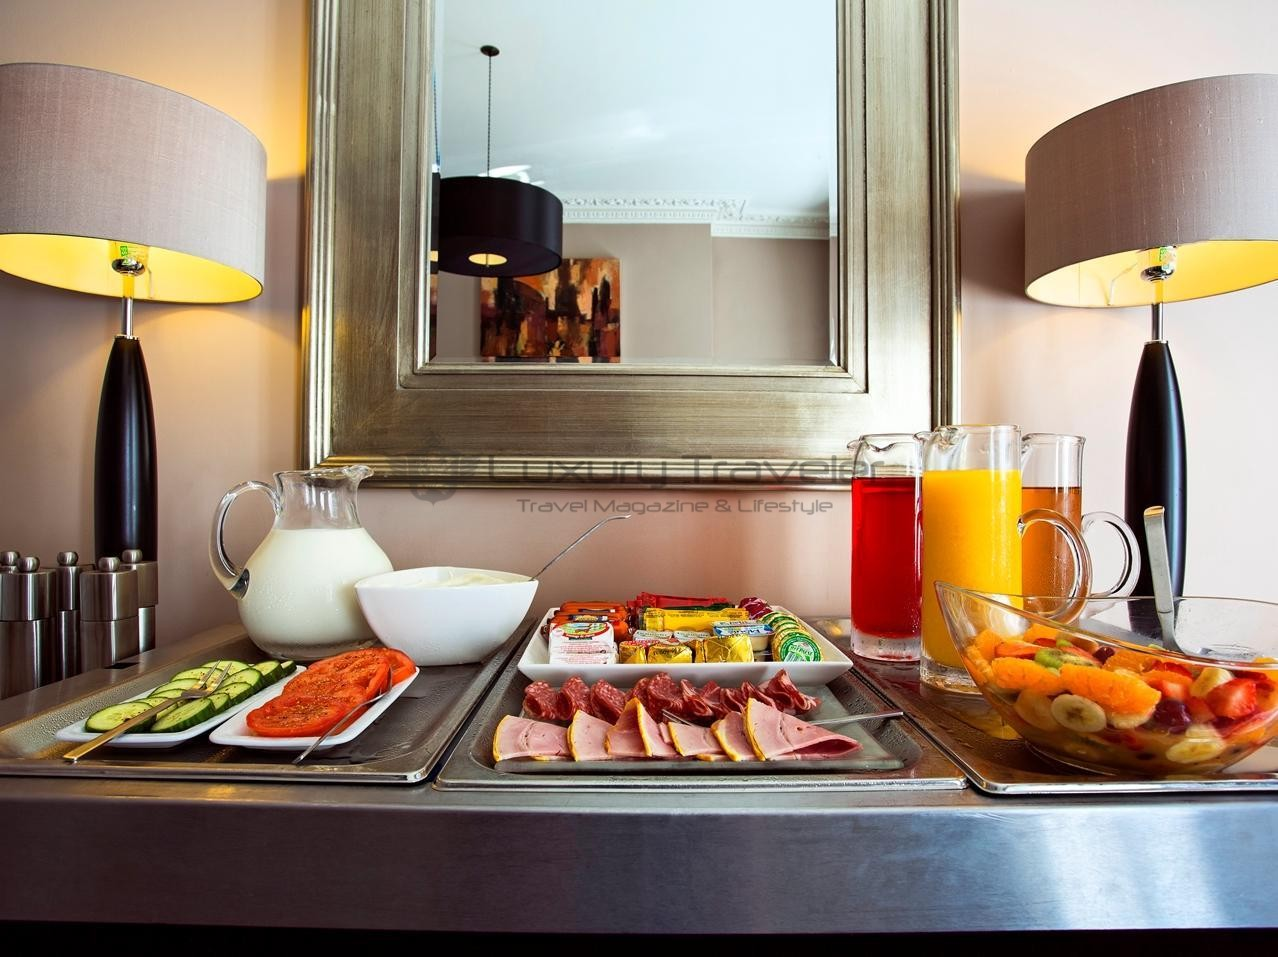 Montagu_Place_Hotel_London_Breakfast